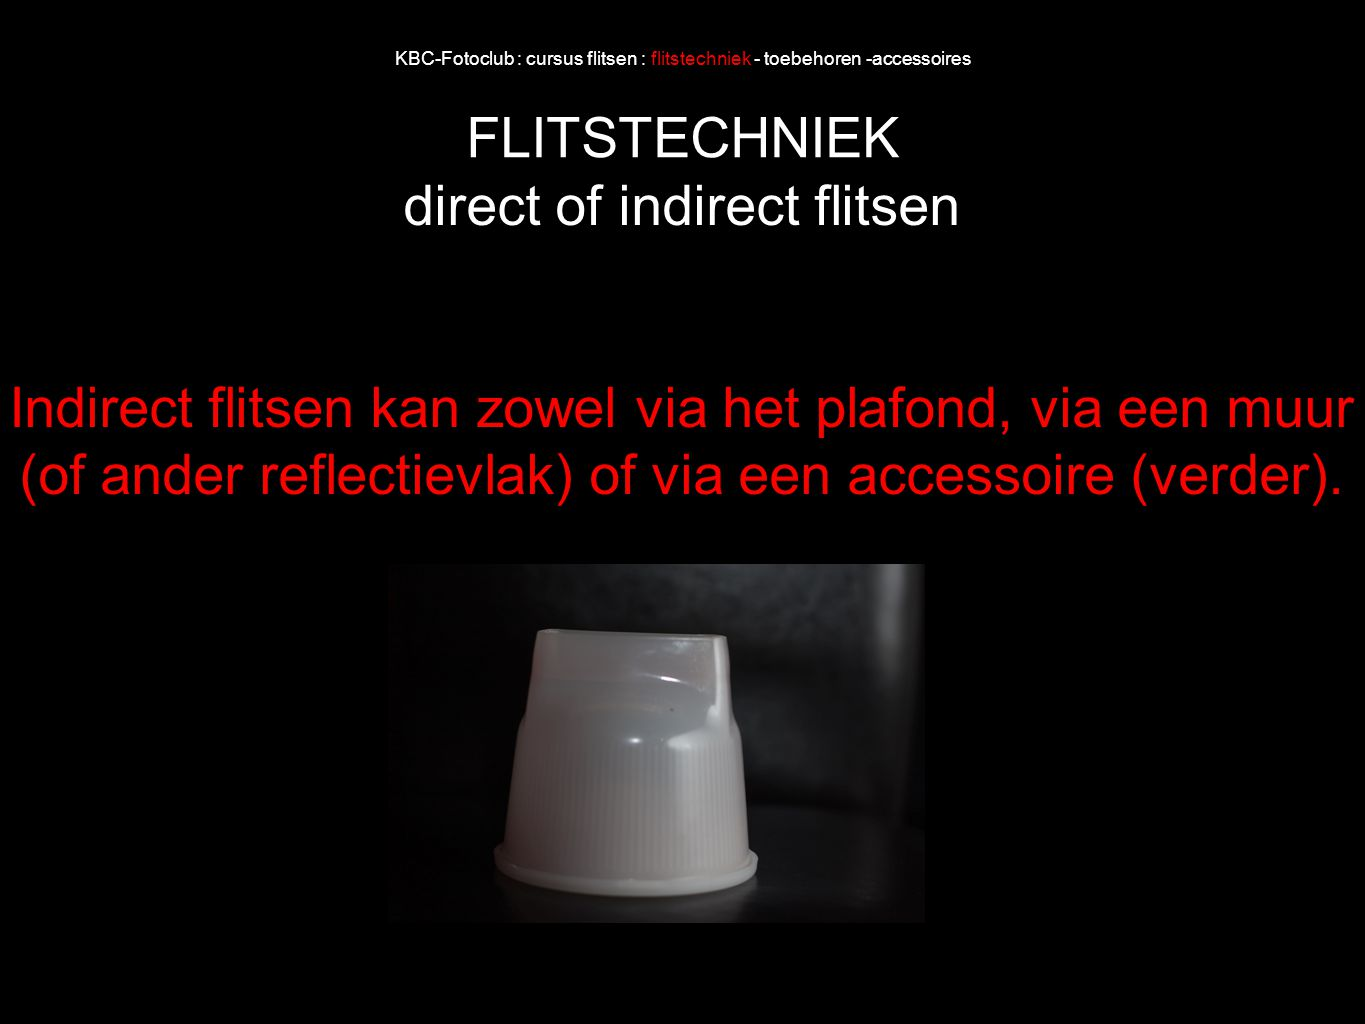 direct of indirect flitsen